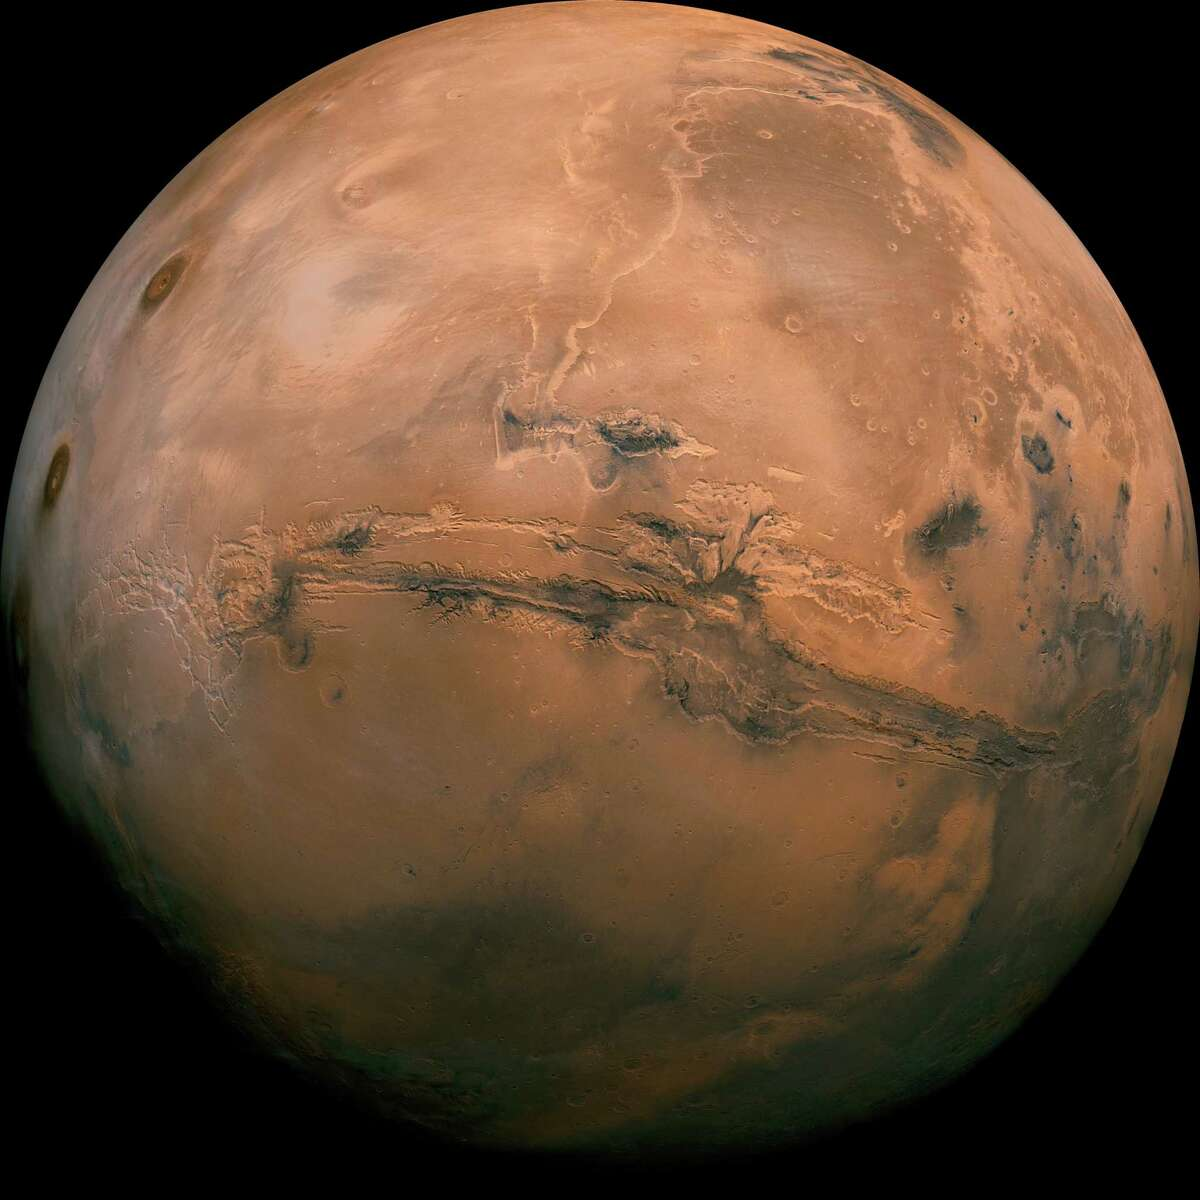 This image provided by NASA shows the plant Mars. President Barack Obama sought on Oct. 11, 2016 to reinvigorate his call for the U.S. to send humans to Mars by the 2030s, showcasing budding partnerships between the U.S. government and commercial companies to develop spacecraft capable of carrying out the extraterrestrial mission.